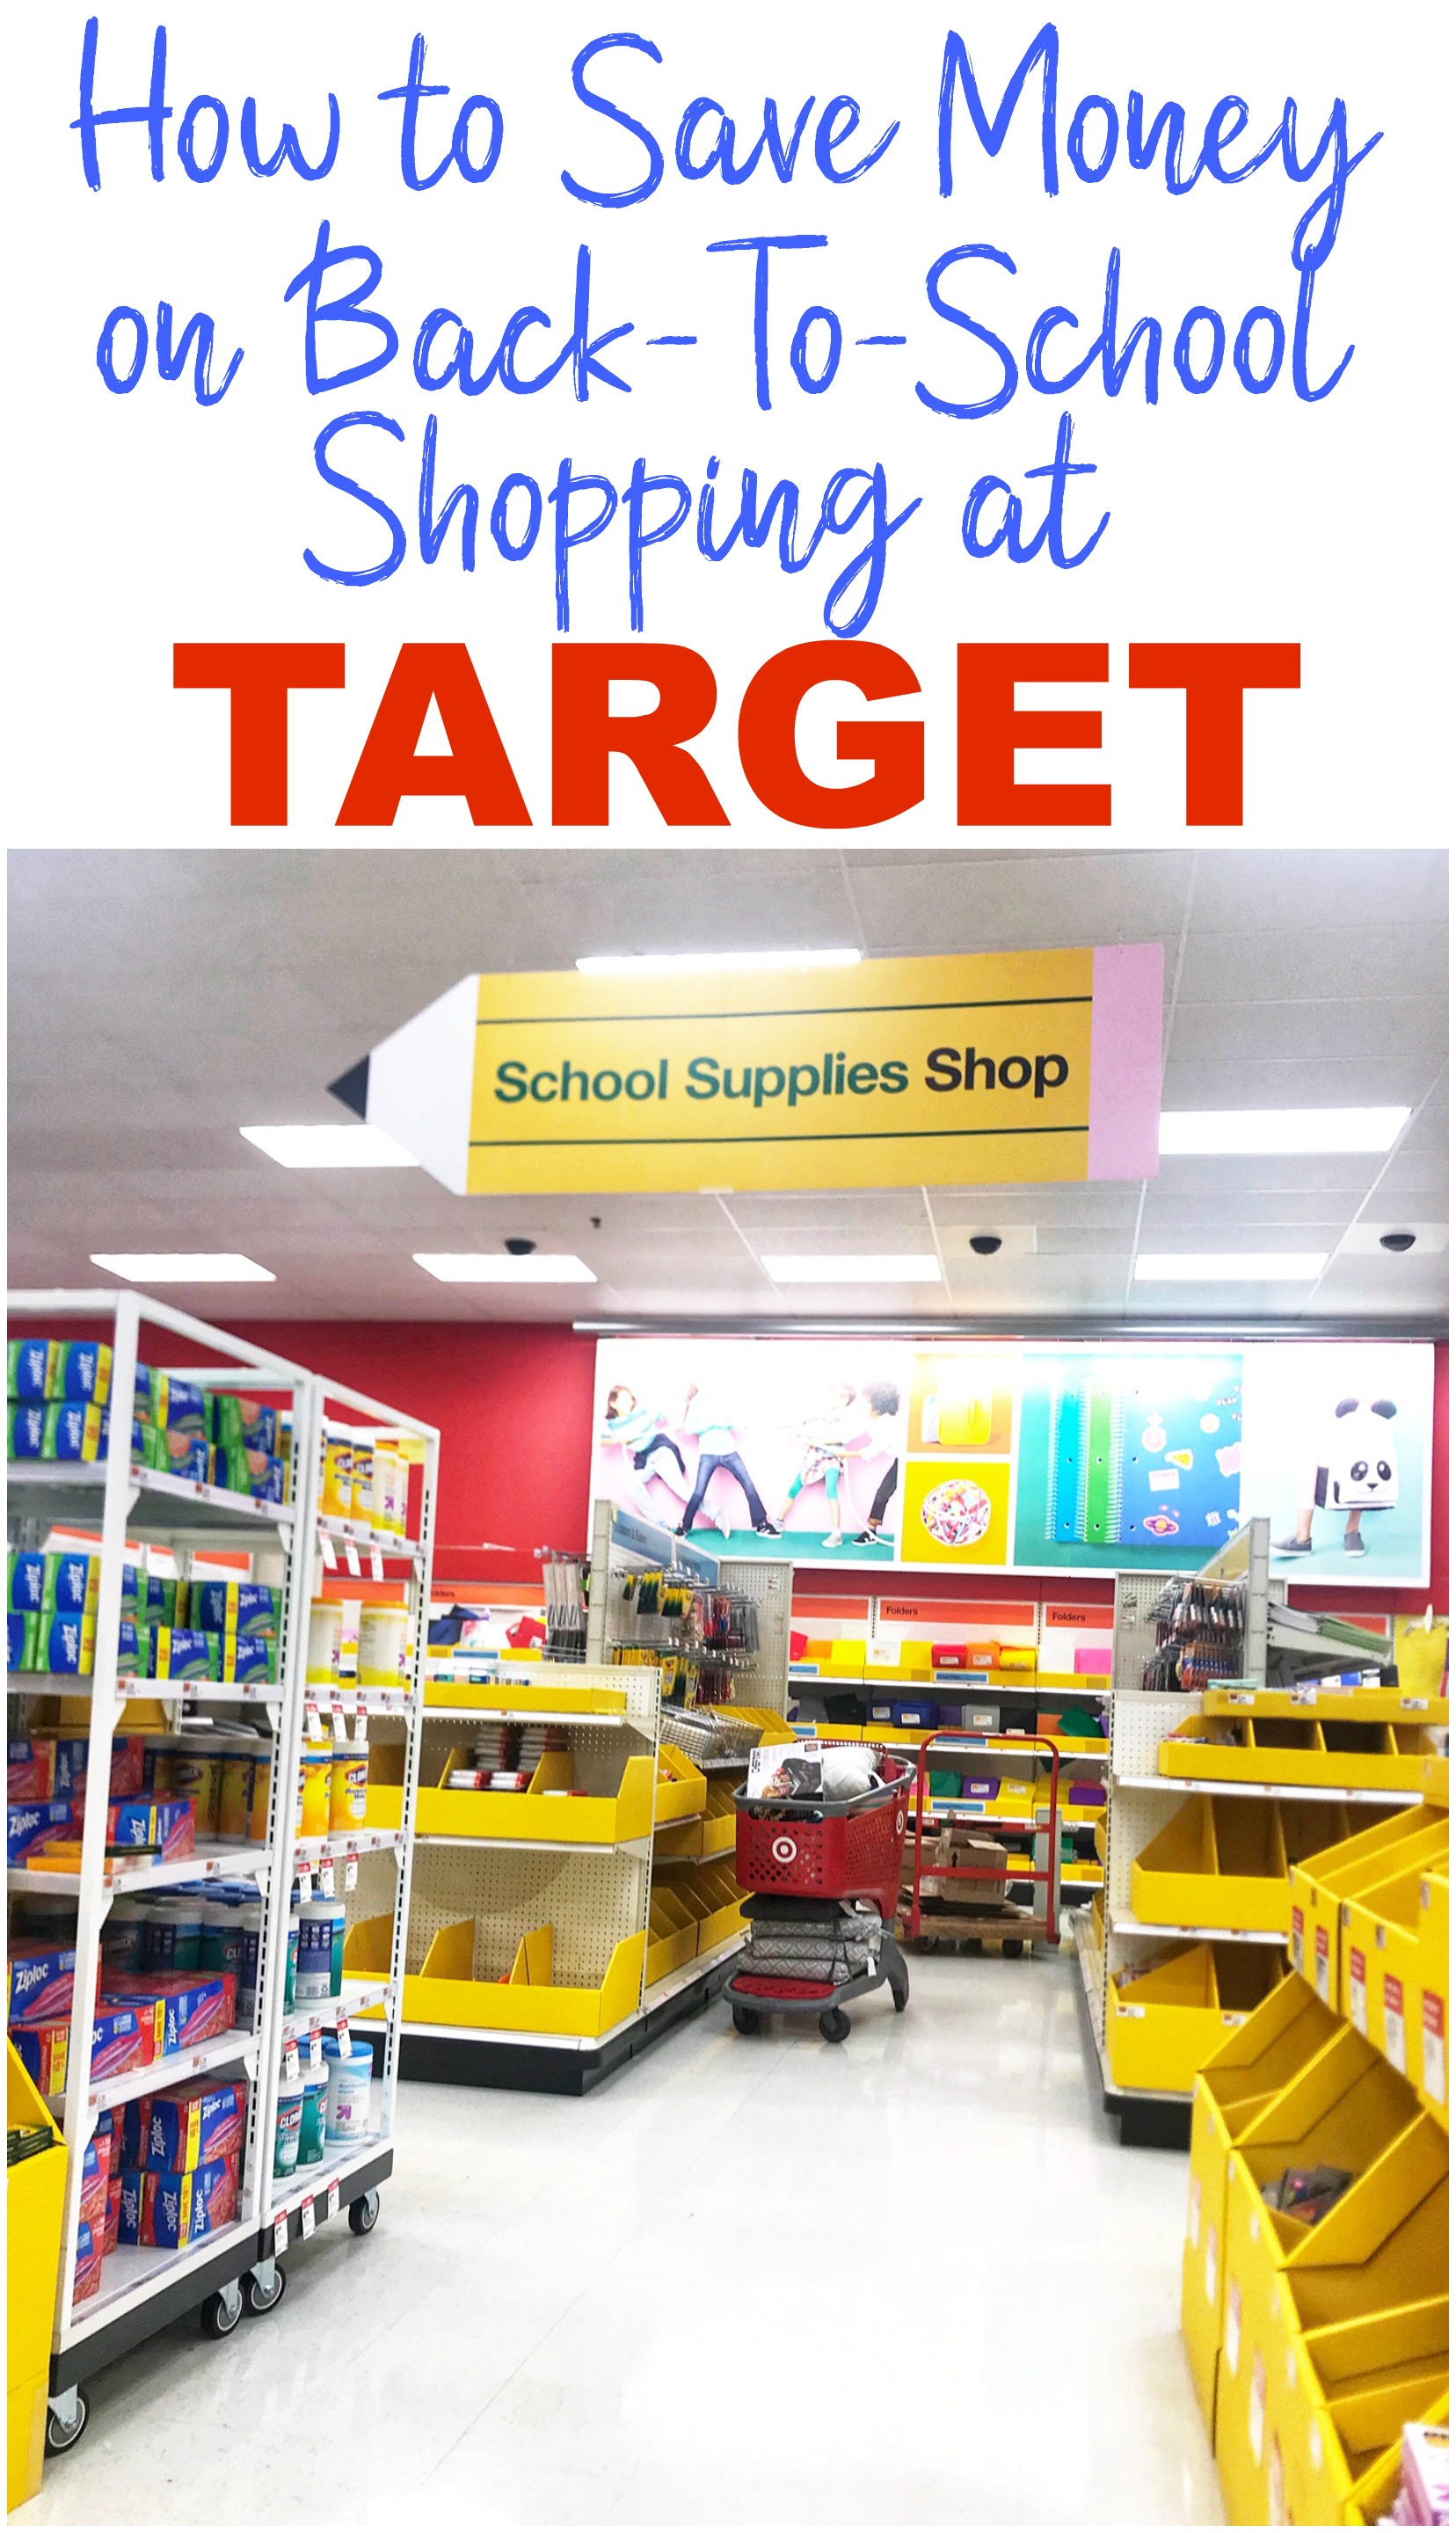 How to save money on back to school shopping at target, back to school shopping savings, back to school deals, back to school clothes shopping, #BTS #backtoschool